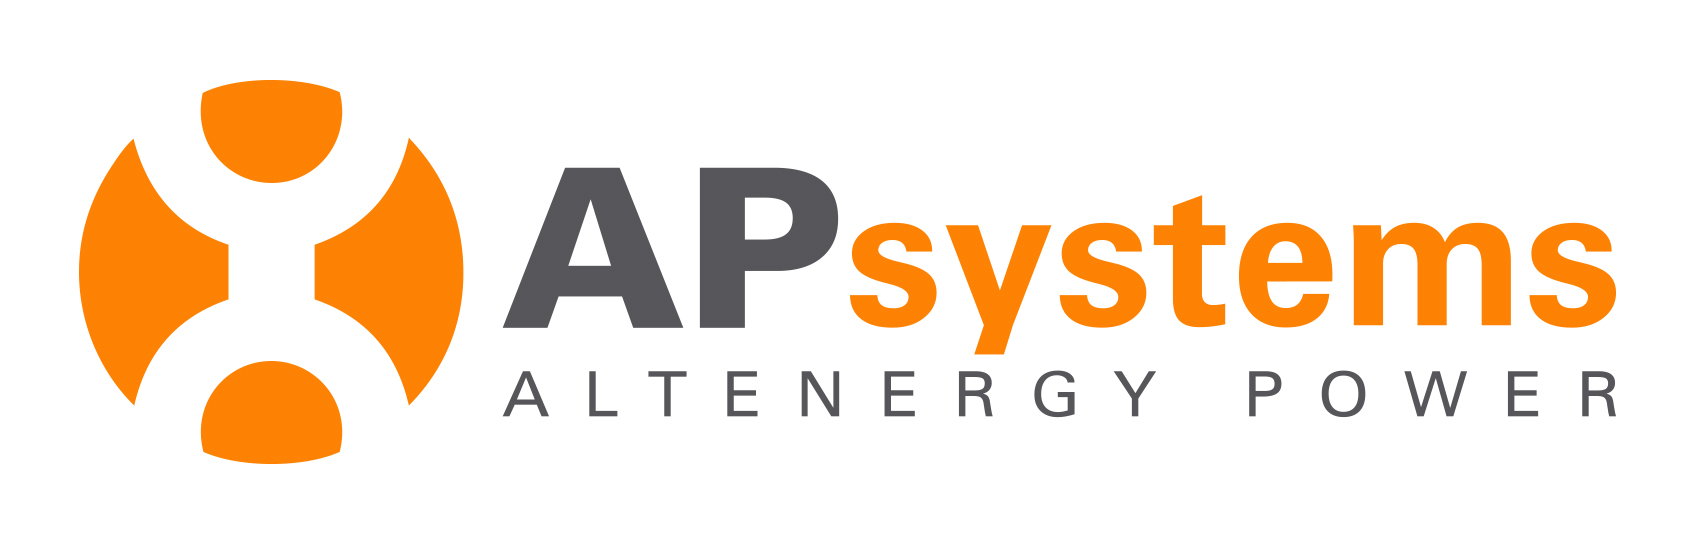 APsystems logo - primary